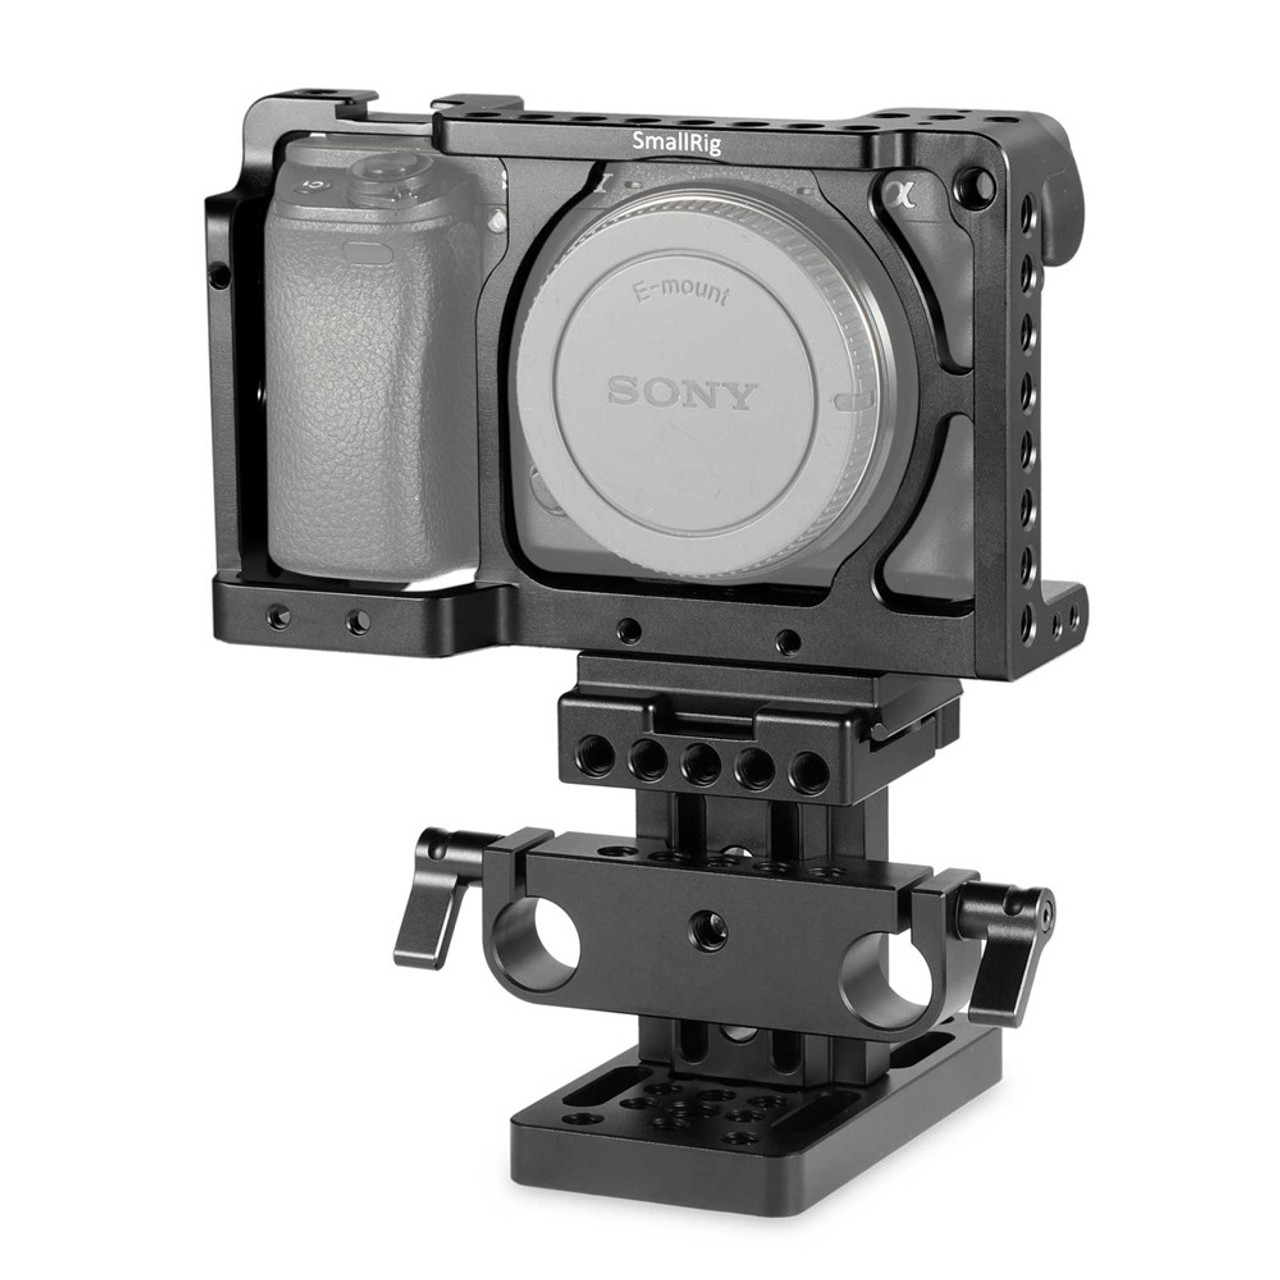 sony ilce 6000. http://www.smallrig.com/product_images/w/506/ sony ilce 6000